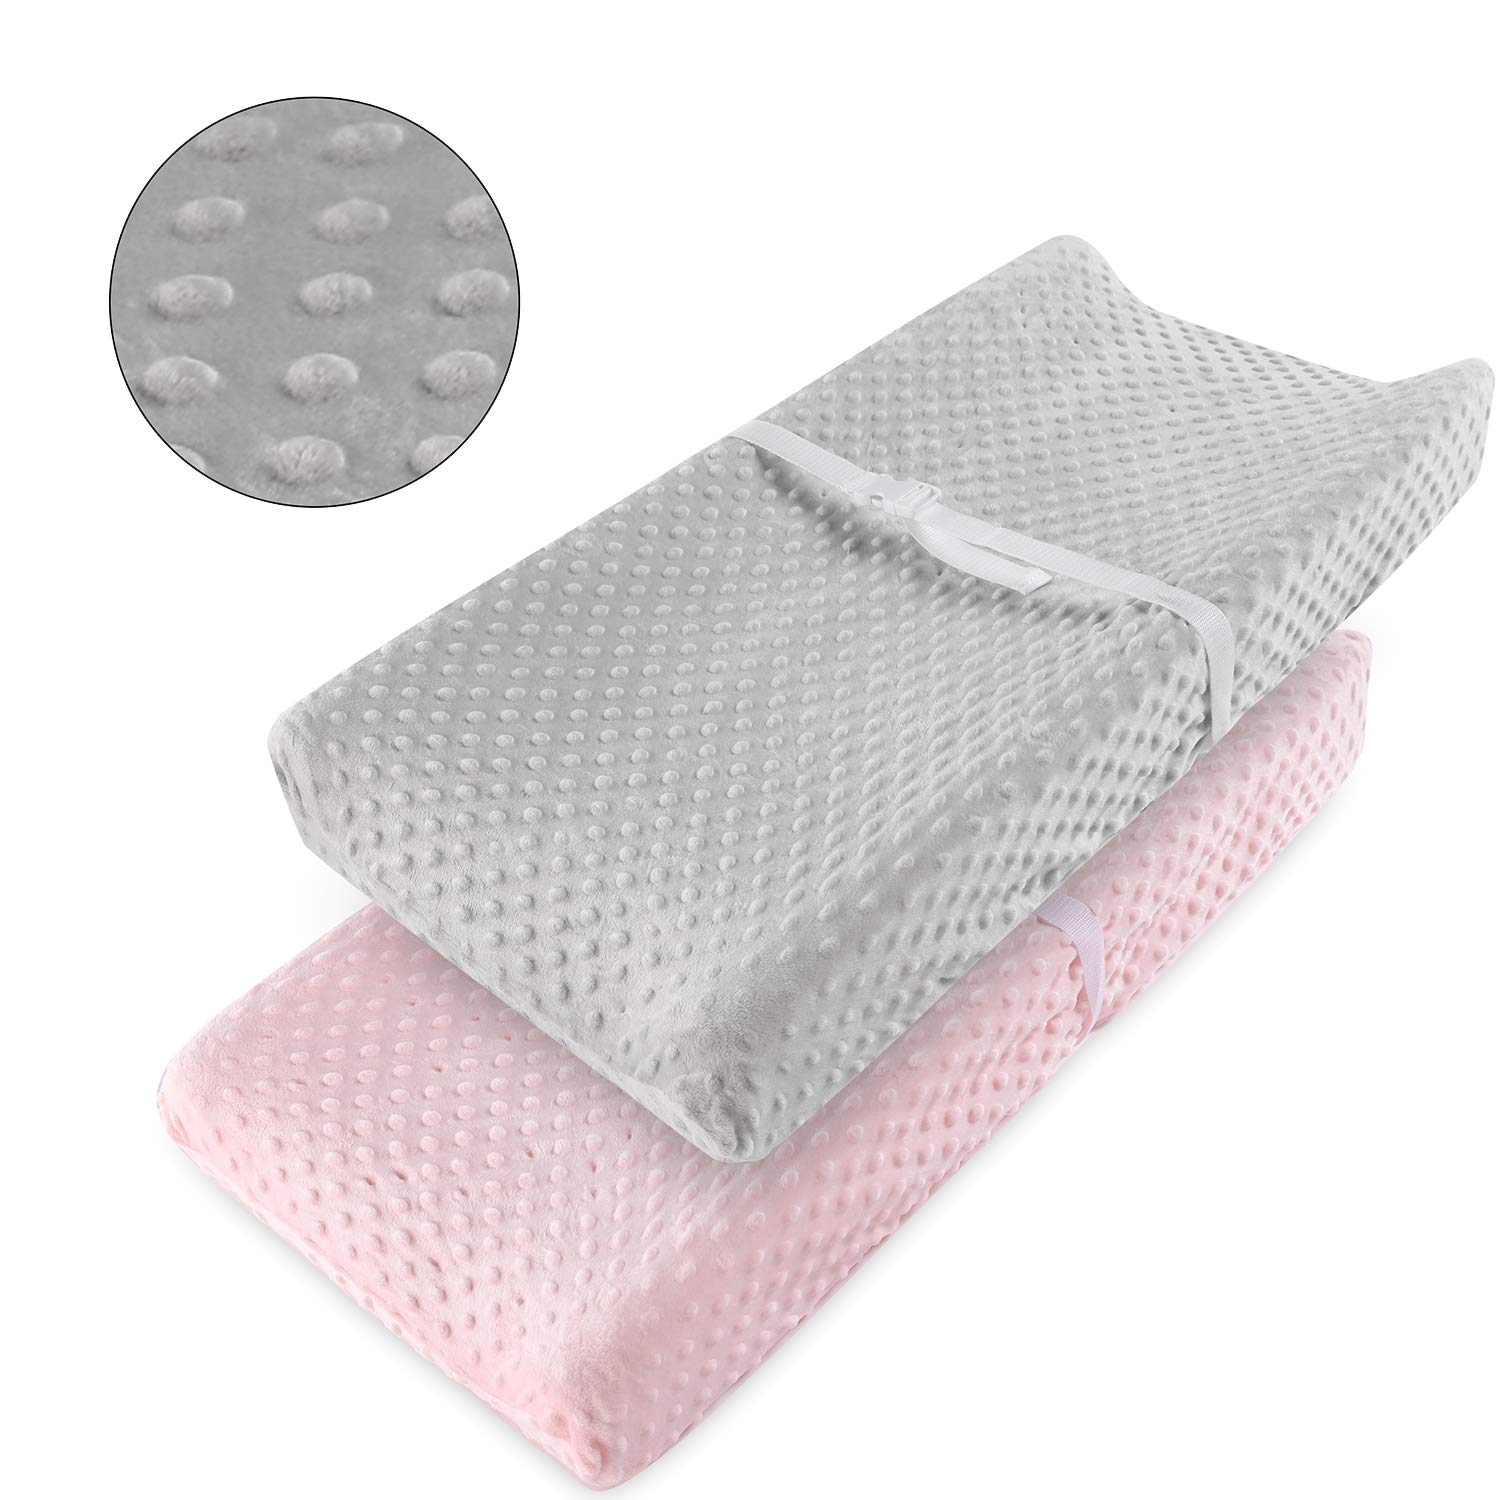 Minky Chaning Pad Cover Dot Changing Pad Covers Girls Ultra Soft Stretchy Premium Changing Table Pad Cover for Girls and Boys Breathable Comfortable Diaper Cover